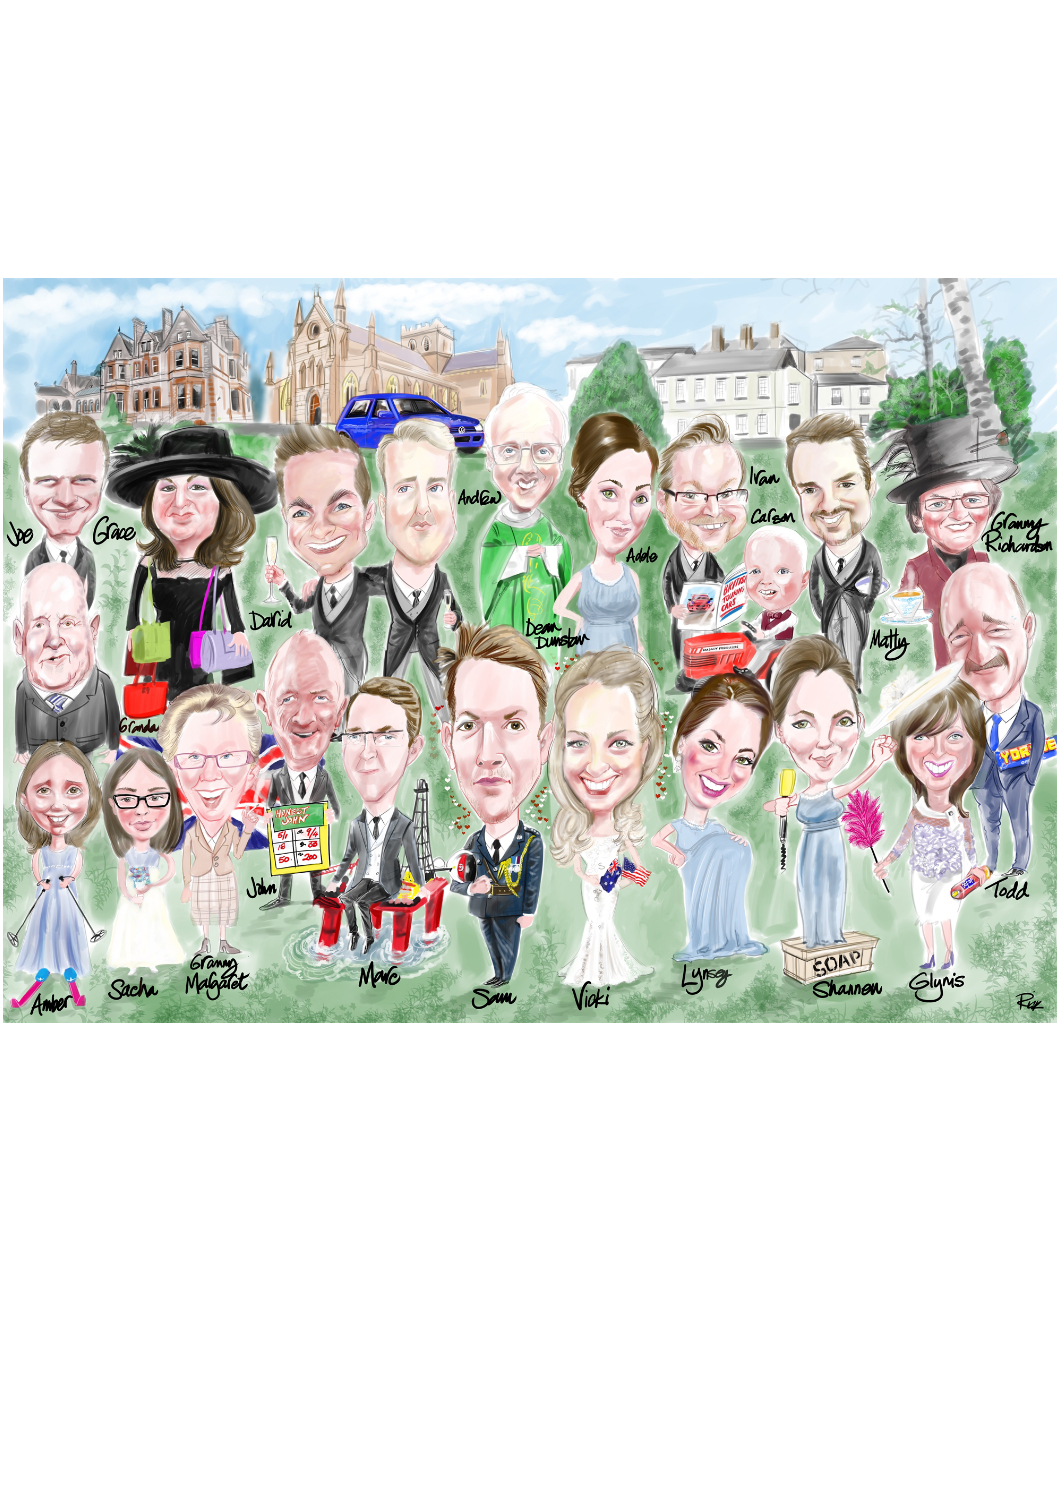 digital caricature family wedding group full colour gathered in front of house.